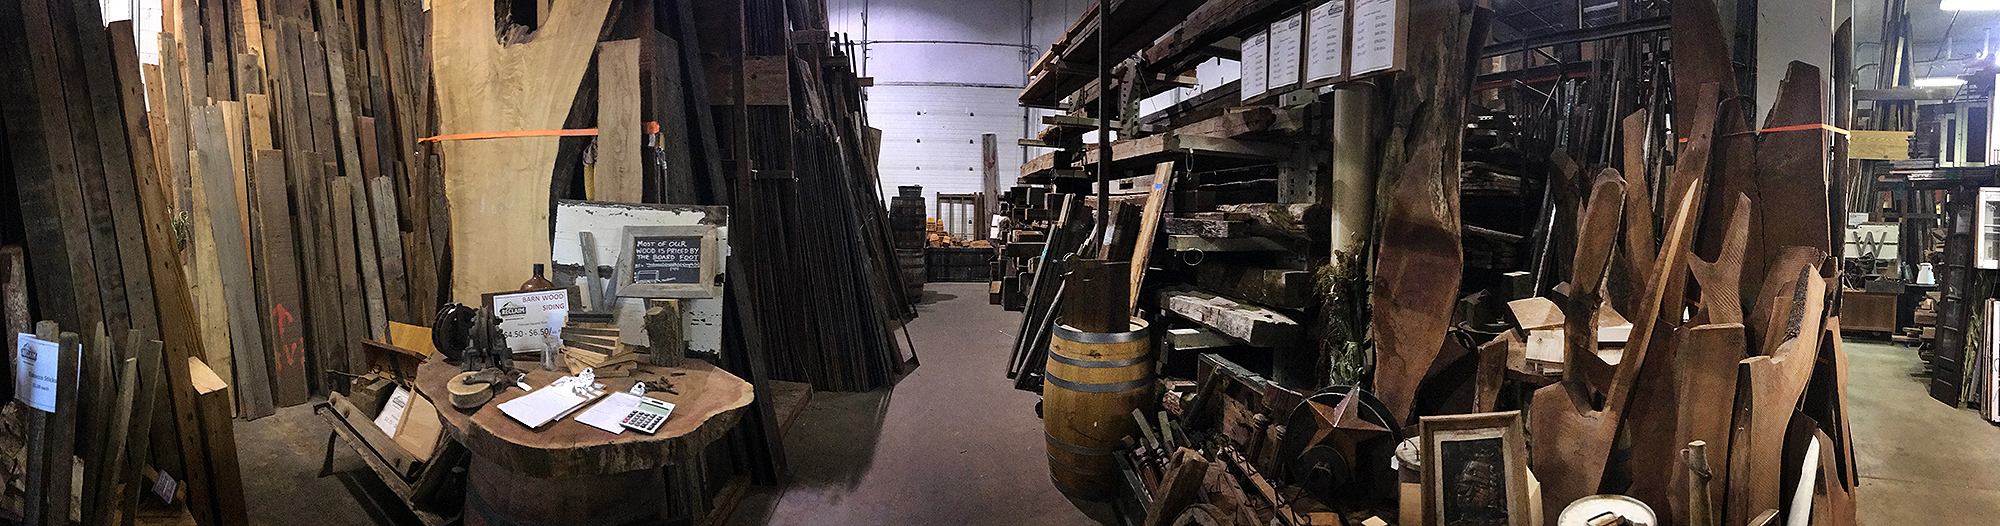 Sourcing wood from reclaimed lumber warehouses in northern Illinois.